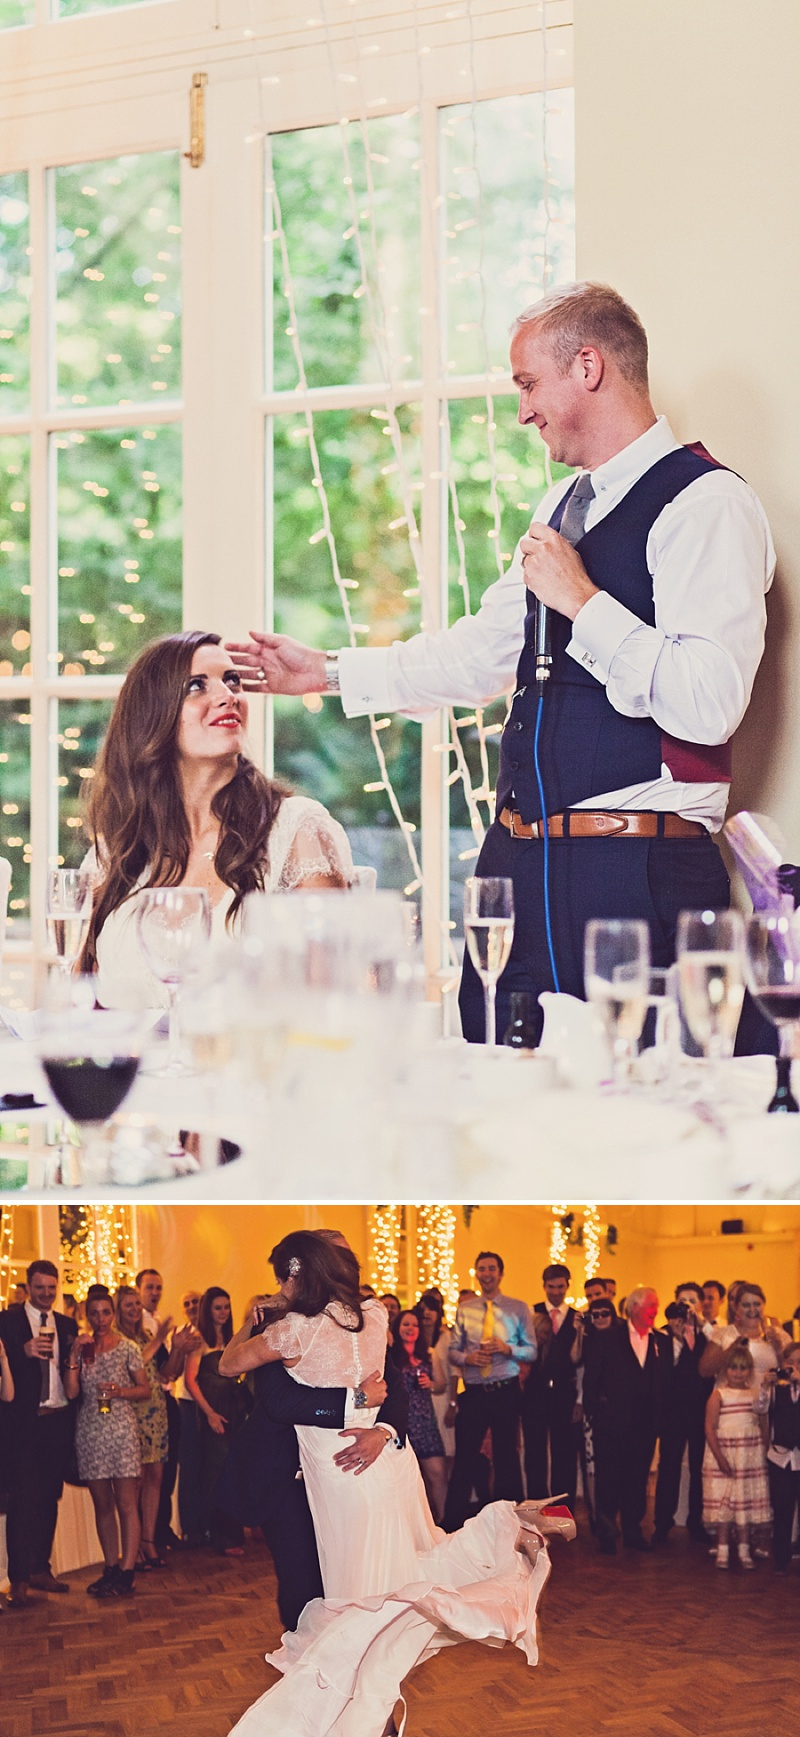 A Purple And Ivory Contemporary Wedding At Kilshane House In Tipperary Ireland With Bride In Aspen By Jenny Packham And Nude Christian Louboutin Peeptoes Images By Claire Penn_0016